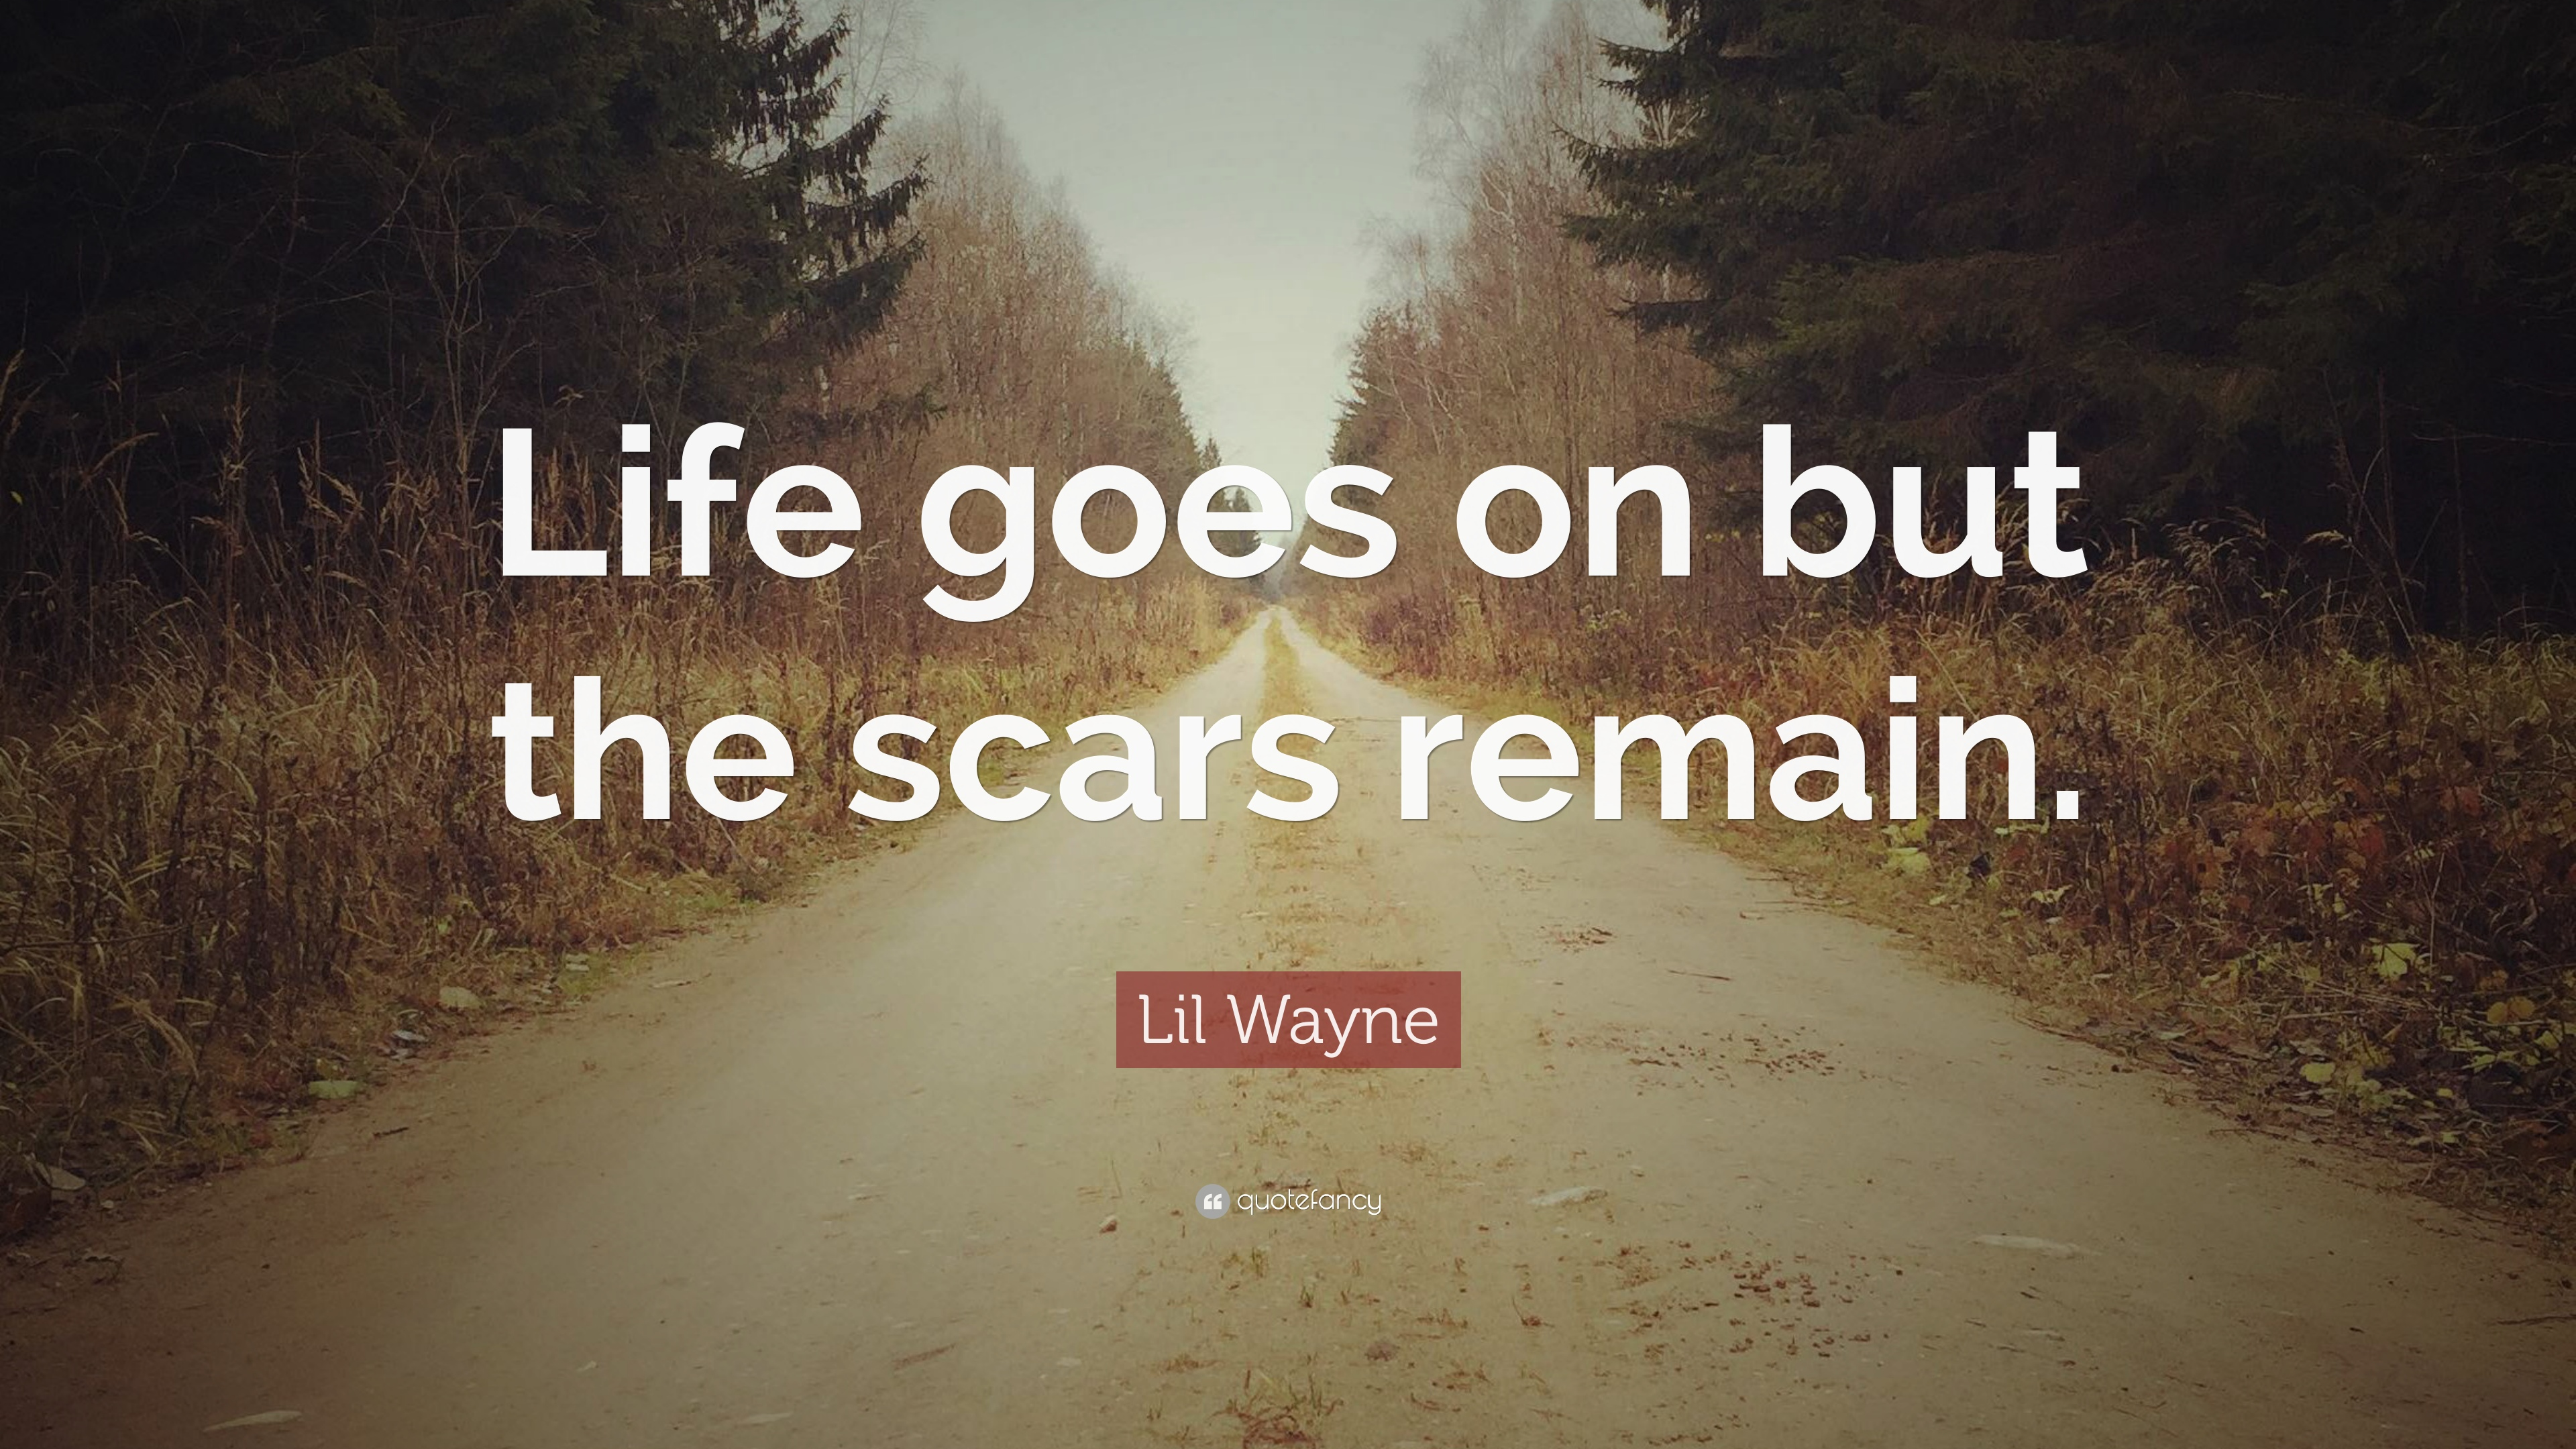 Lil Wayne Quote Life Goes On But The Scars Remain